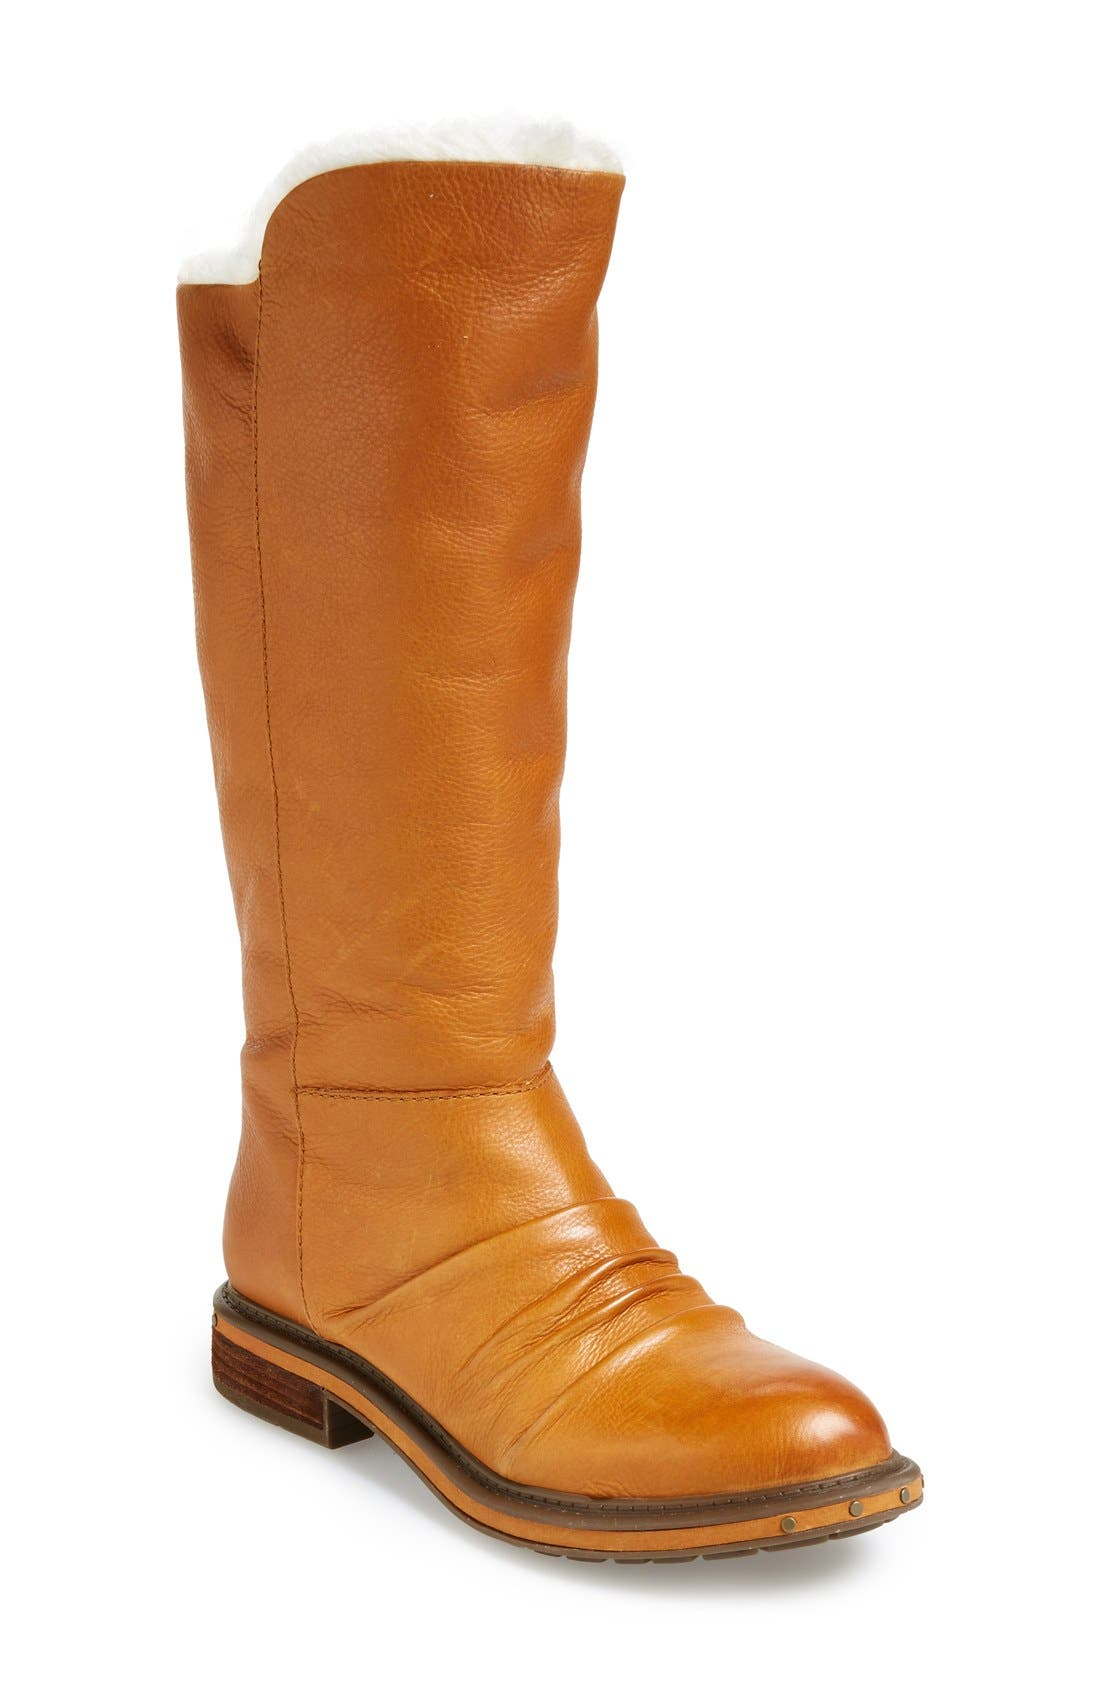 Alternate Image 1 Selected - Naya 'Raptor' Leather Tall Boot (Women) (Wide Calf)